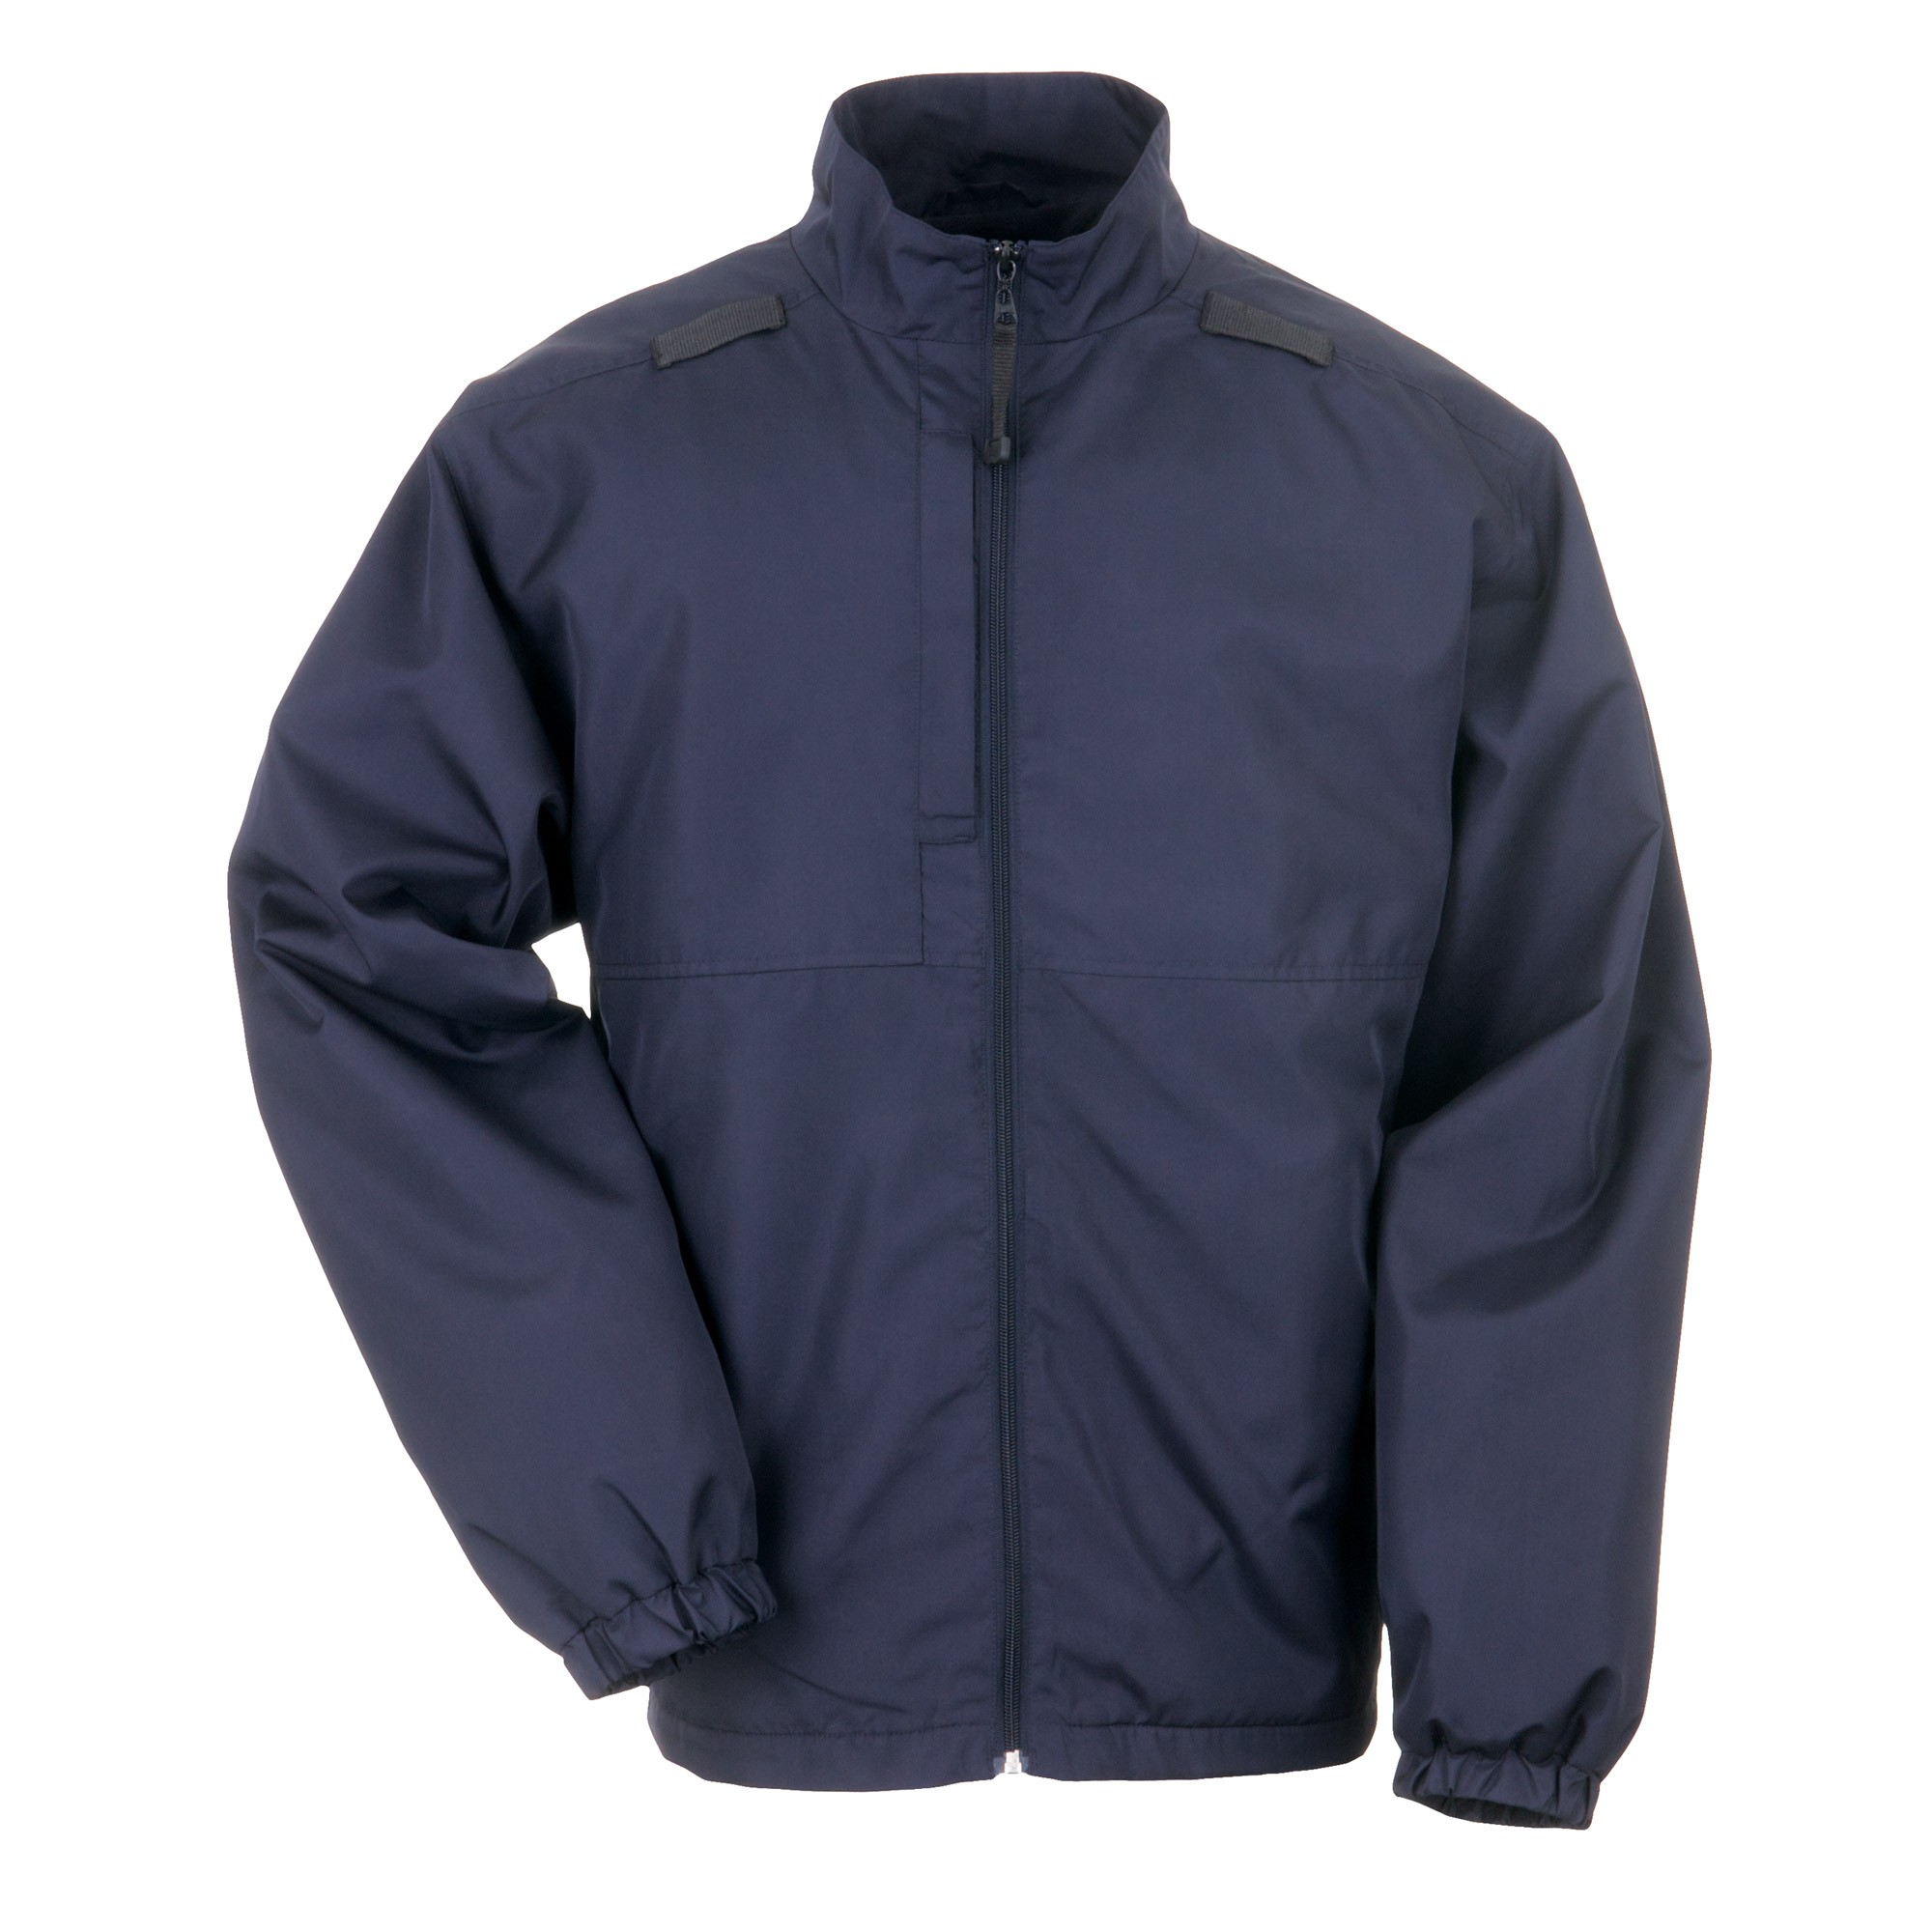 5.11 Mens Lined Packable Jacket 48052